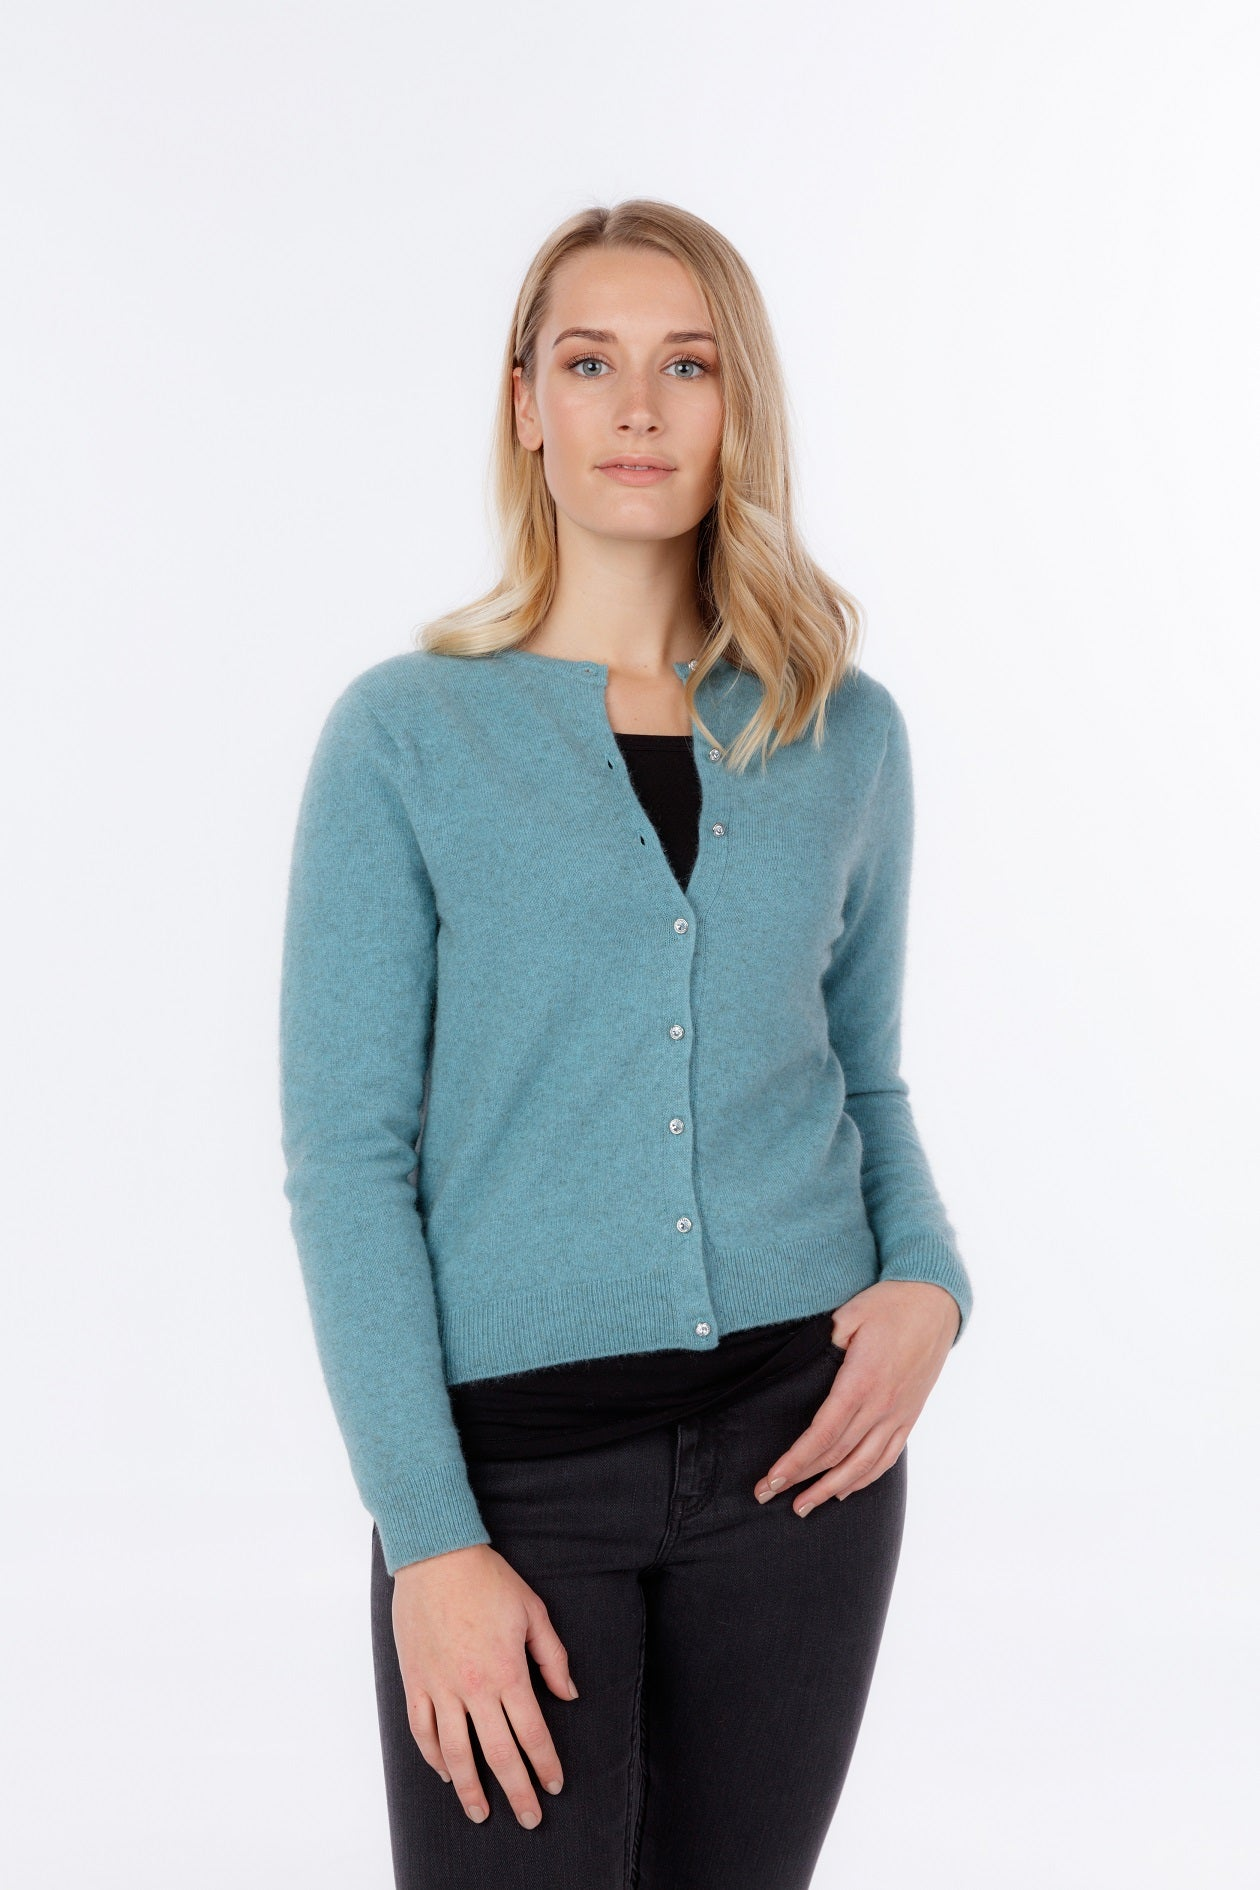 Women's crew neck, long sleeve cardigan with crystal buttons. Possum Merino Wool knit.